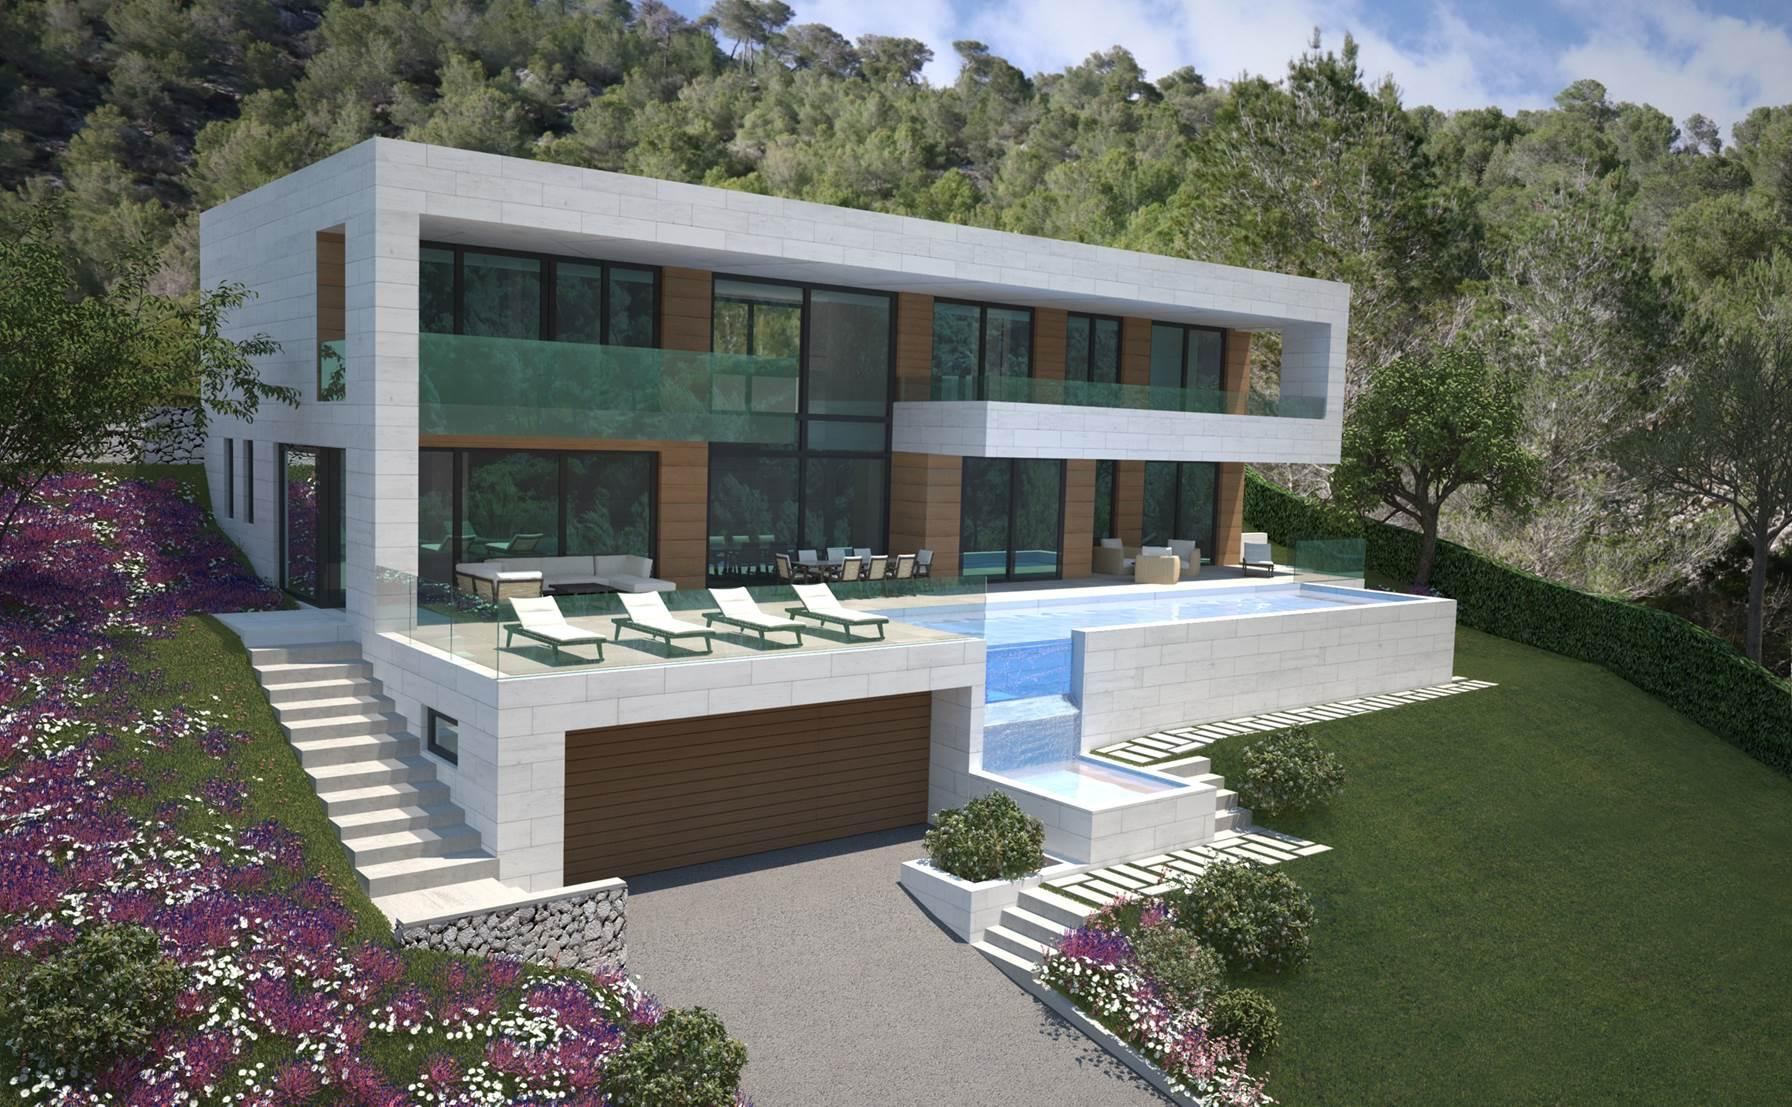 PMA-STUDIO-Son Vida 2-Architect-Mallorca-House-Project-Management-Architecture-01